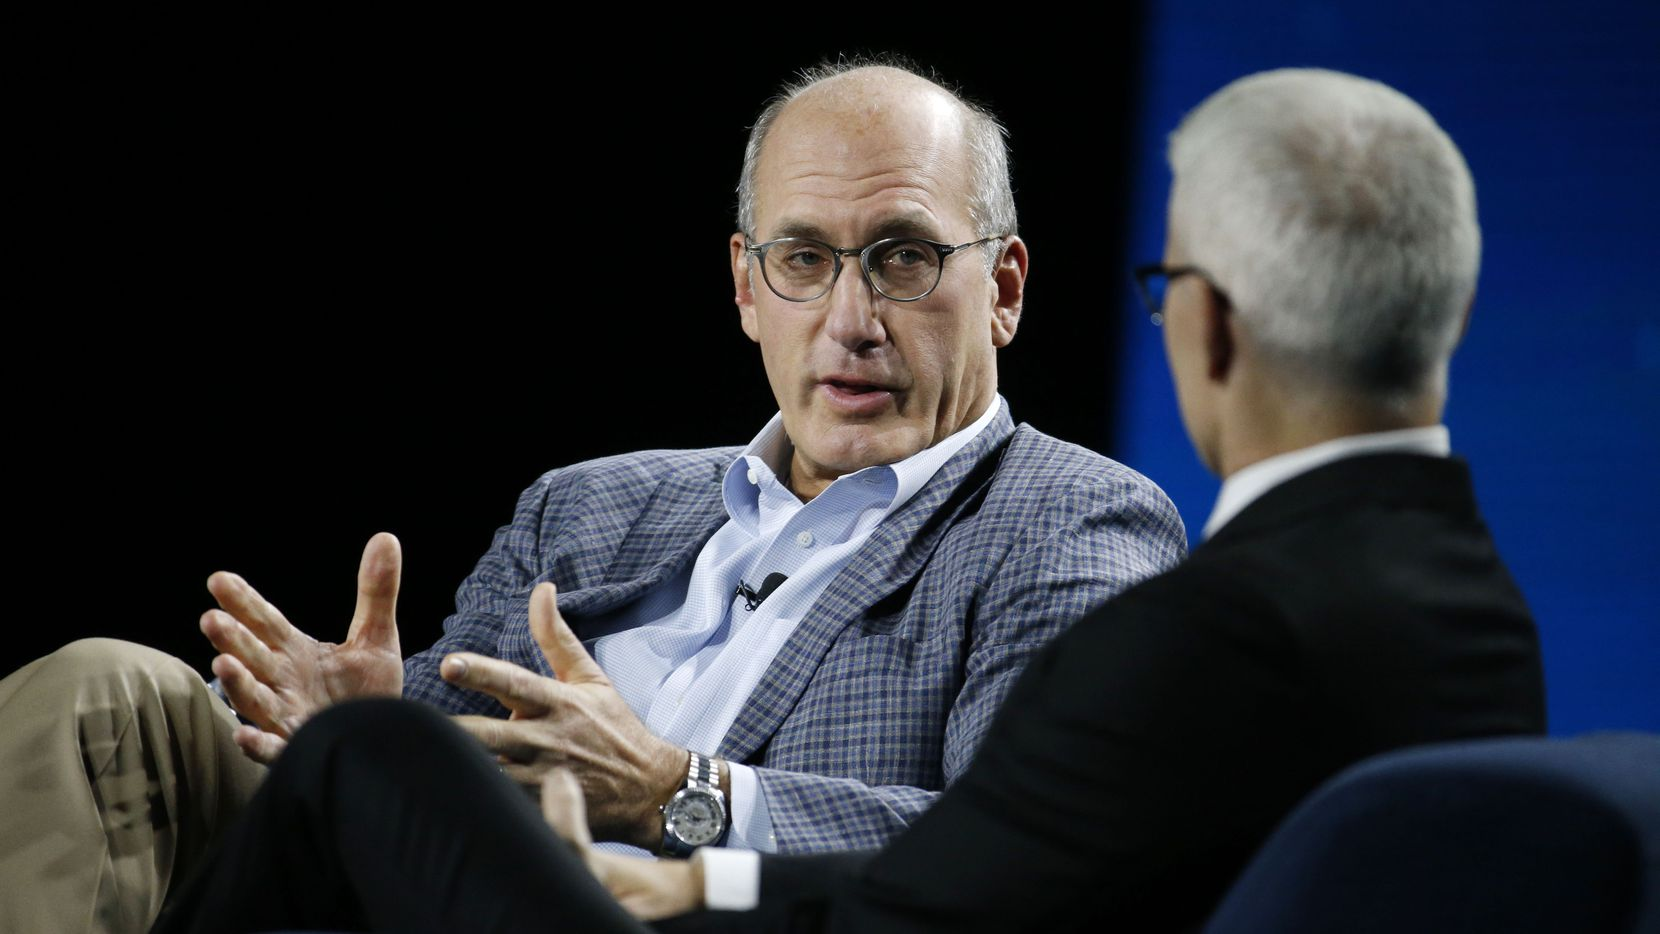 John Stankey, CEO of WarnerMedia, was interviewed by Anderson Cooper during the AT&T Business Summit at Gaylord Texan Resort & Convention Center in Grapevine in 2018.